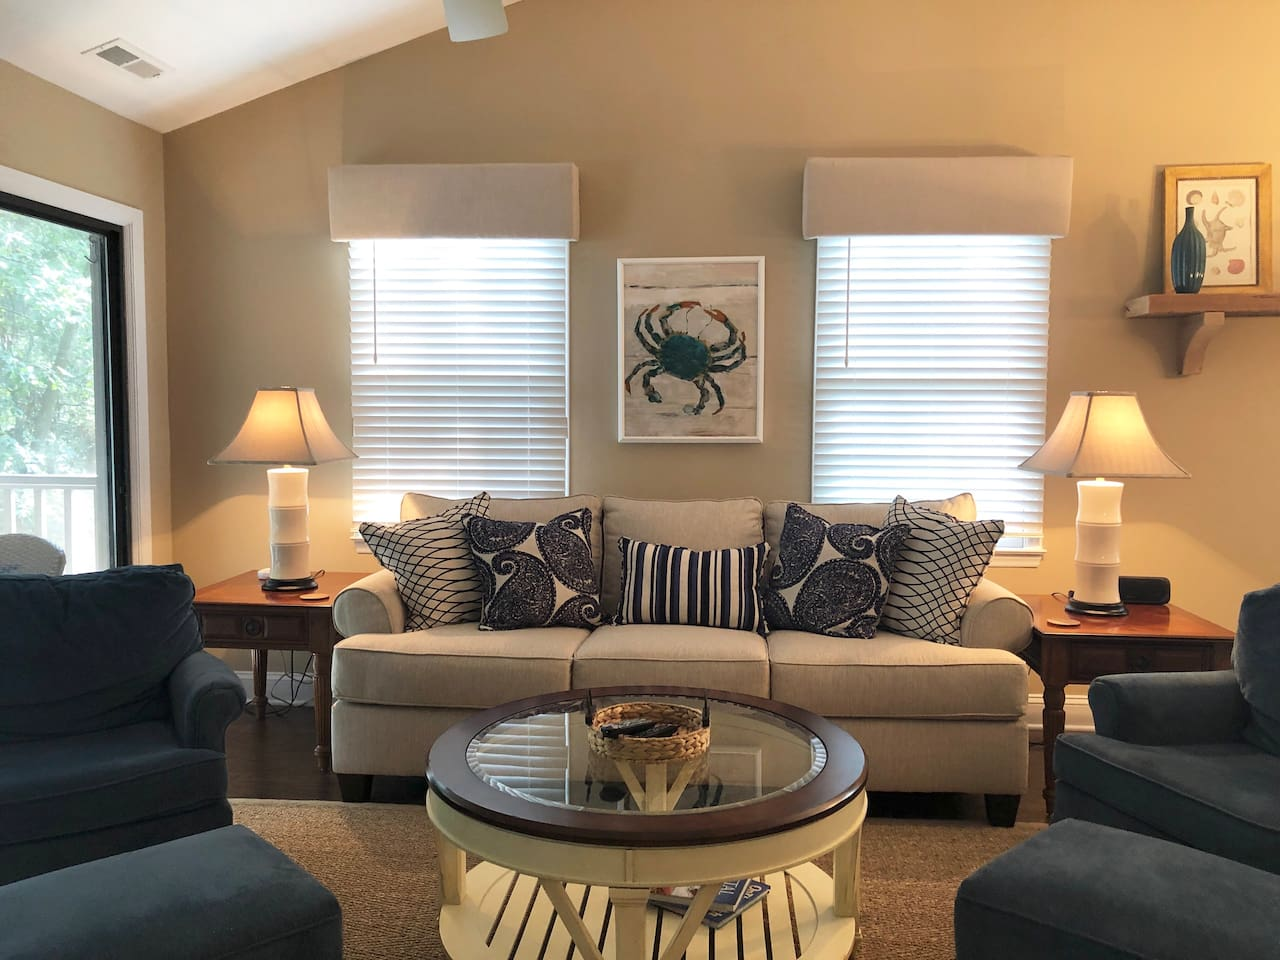 Imagine relaxing in this beautiful space watching your favorite Netflix show and/or enjoying time with friends and family.